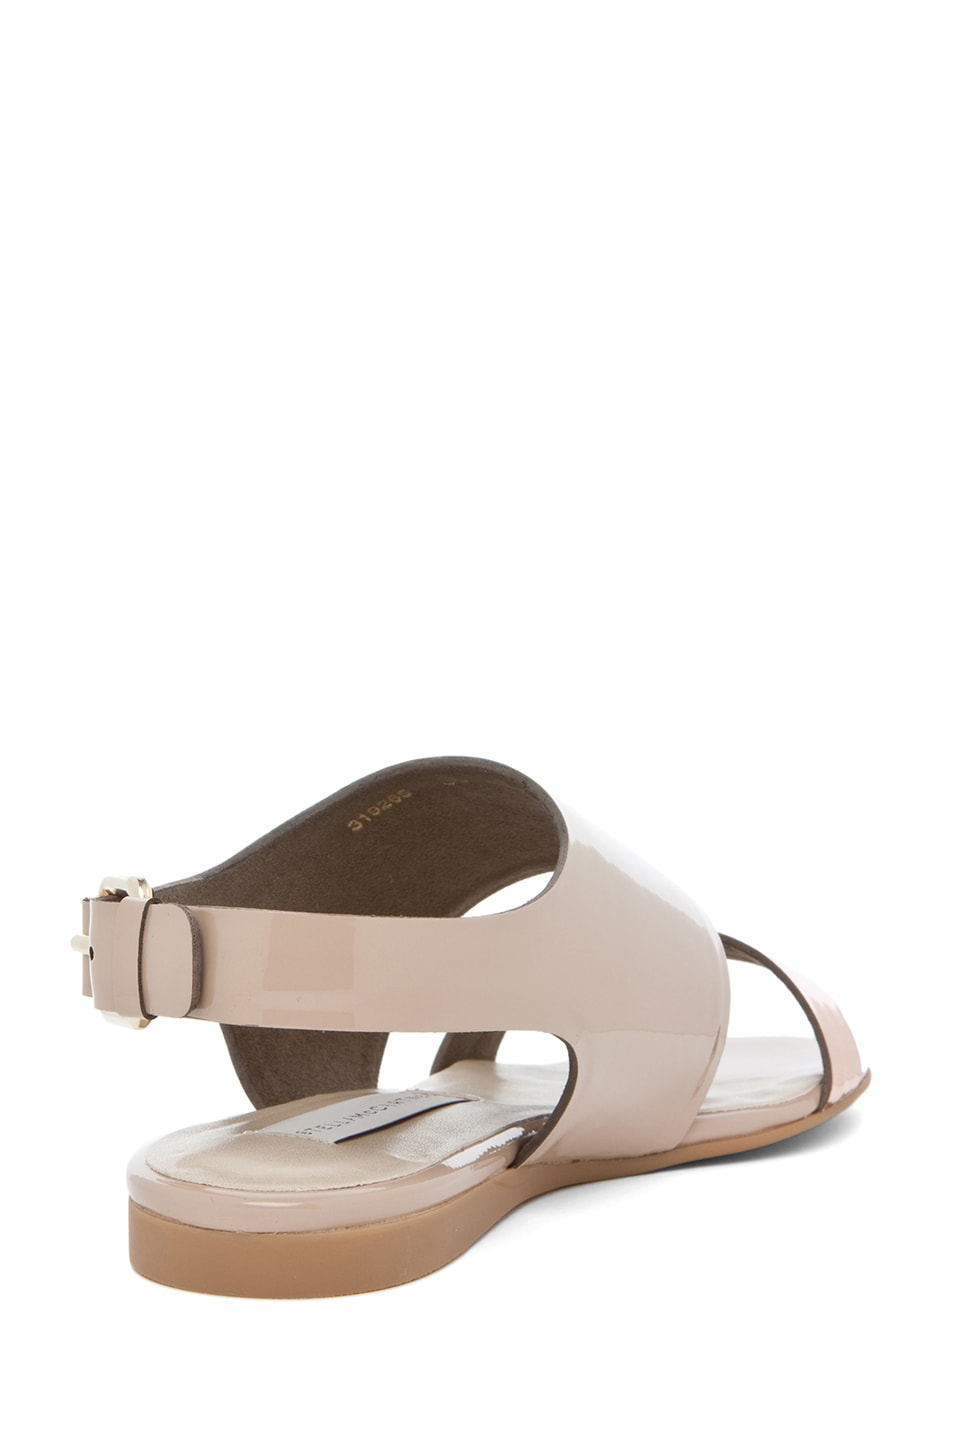 Image 3 of Stella McCartney Sandal in Rose Gold & Desert